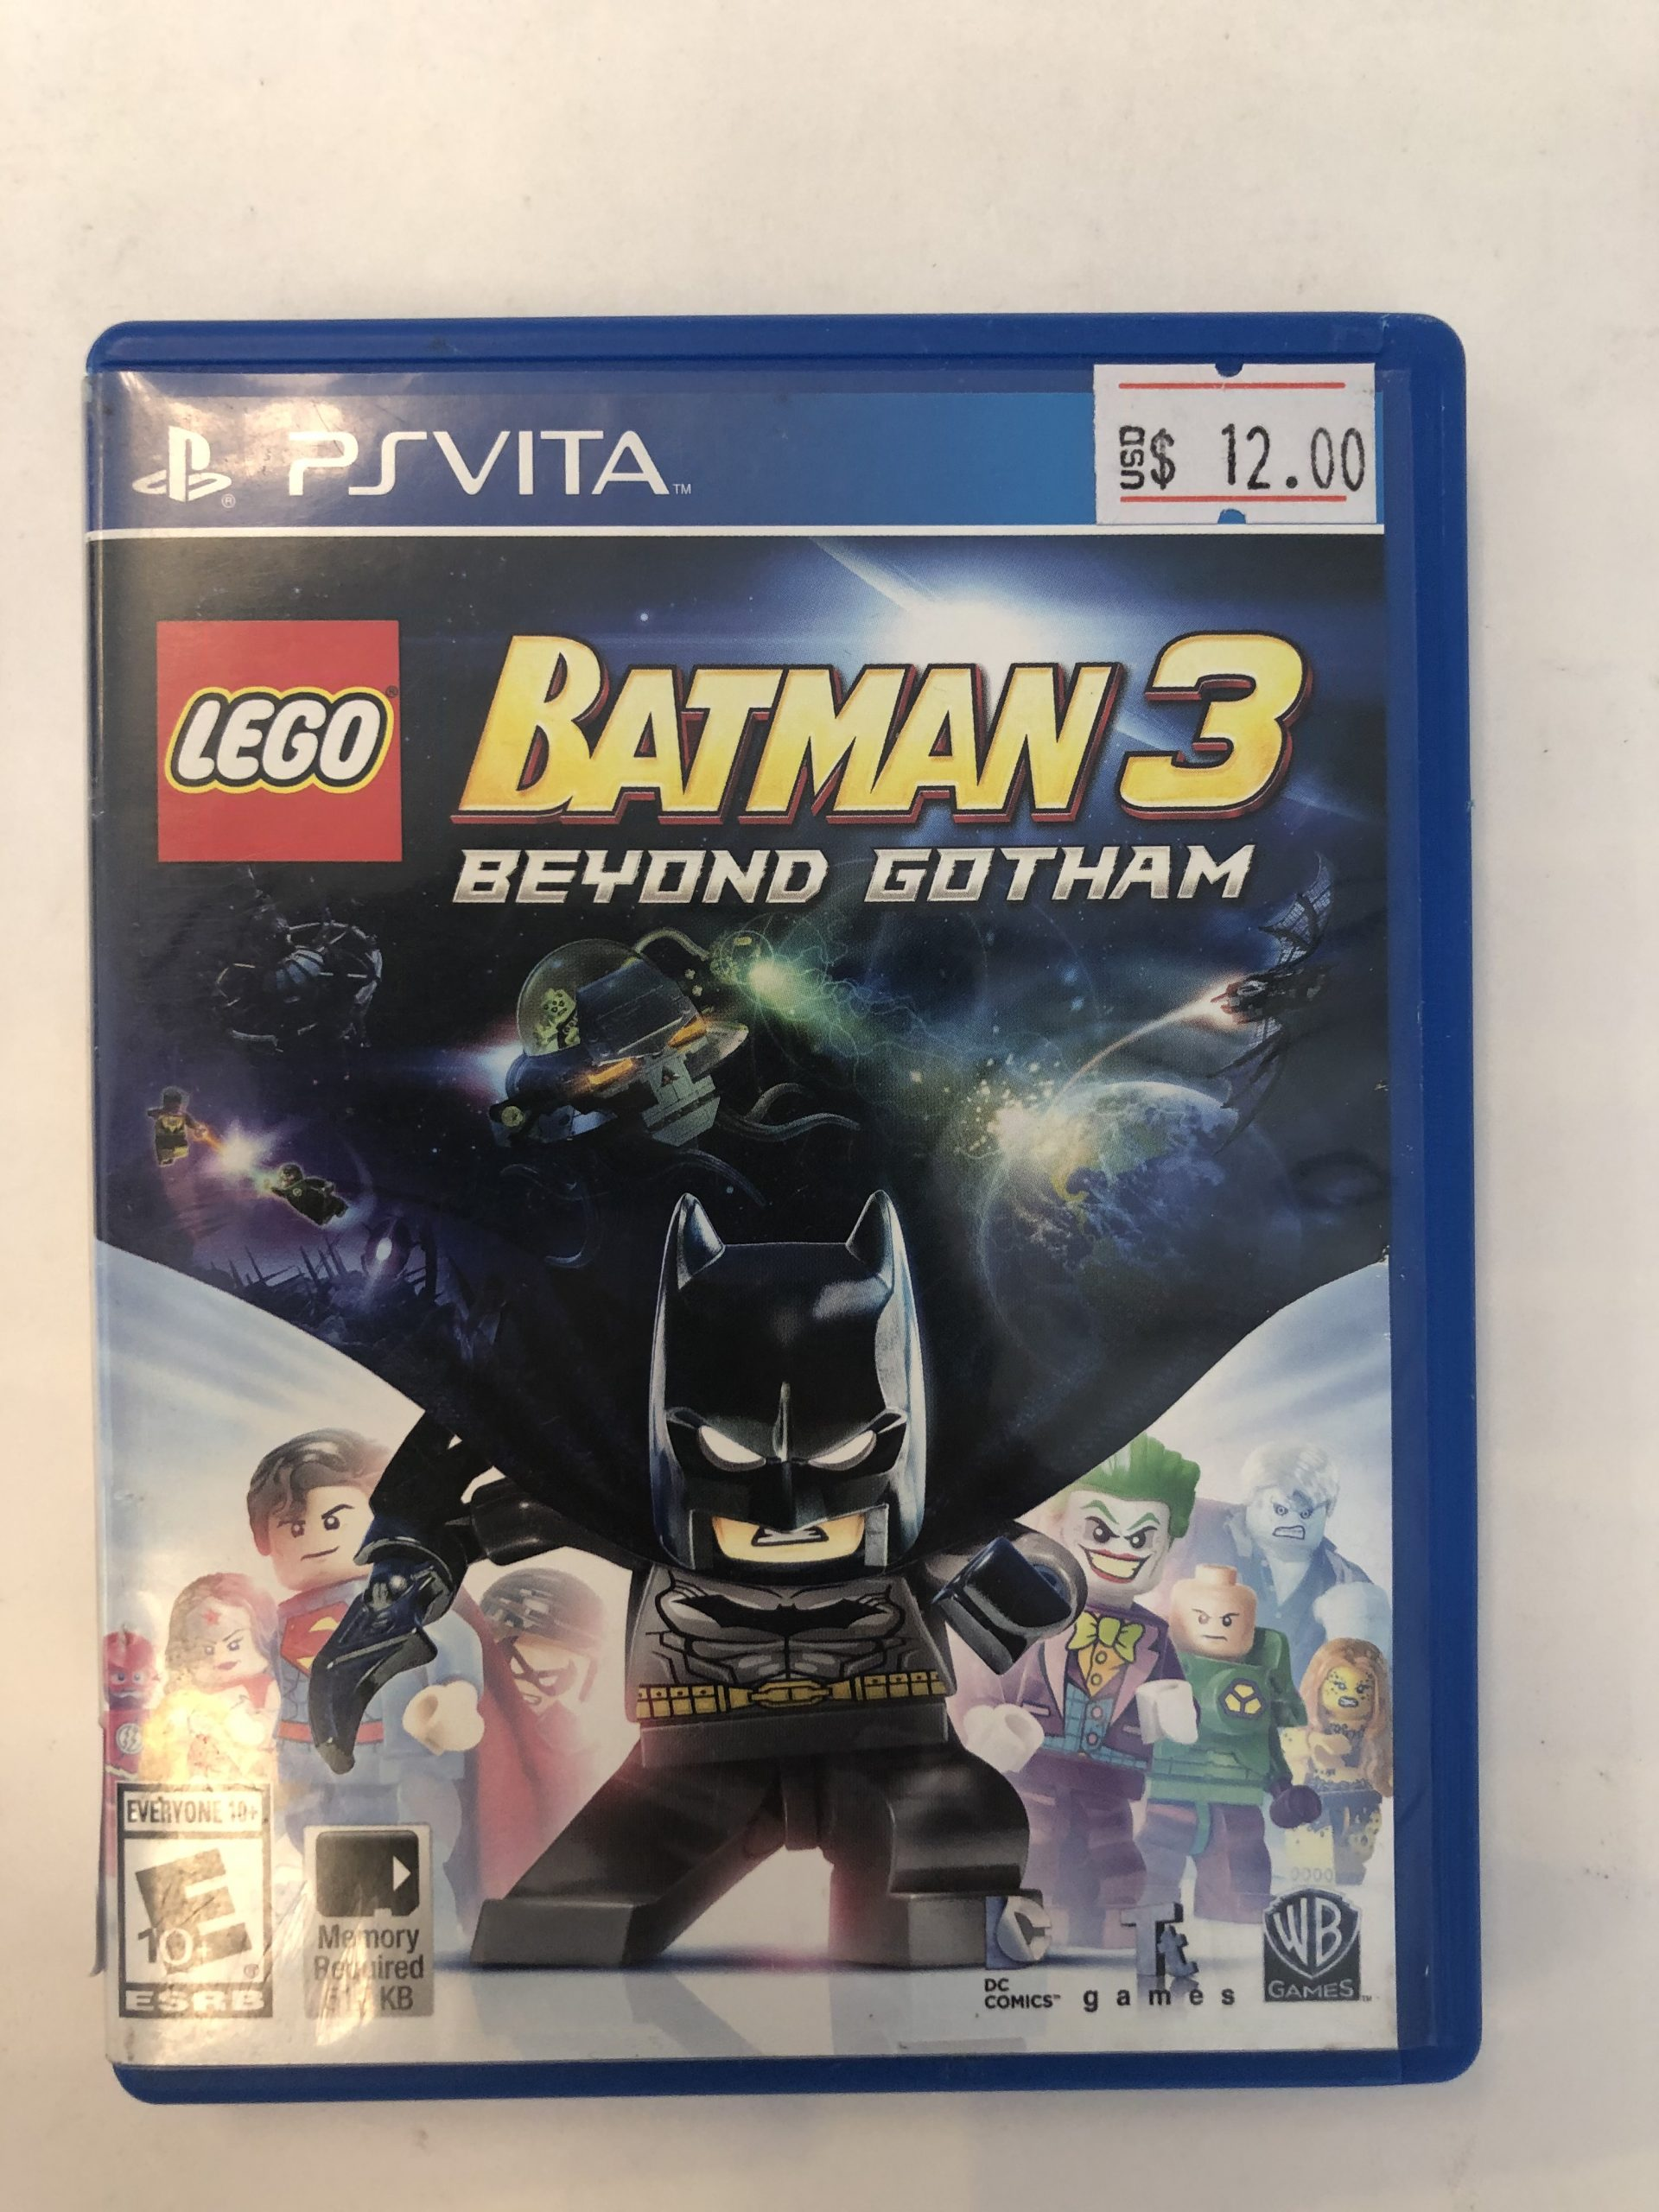 Lego Batman 3 Beyond Gotham CIB PS Vita